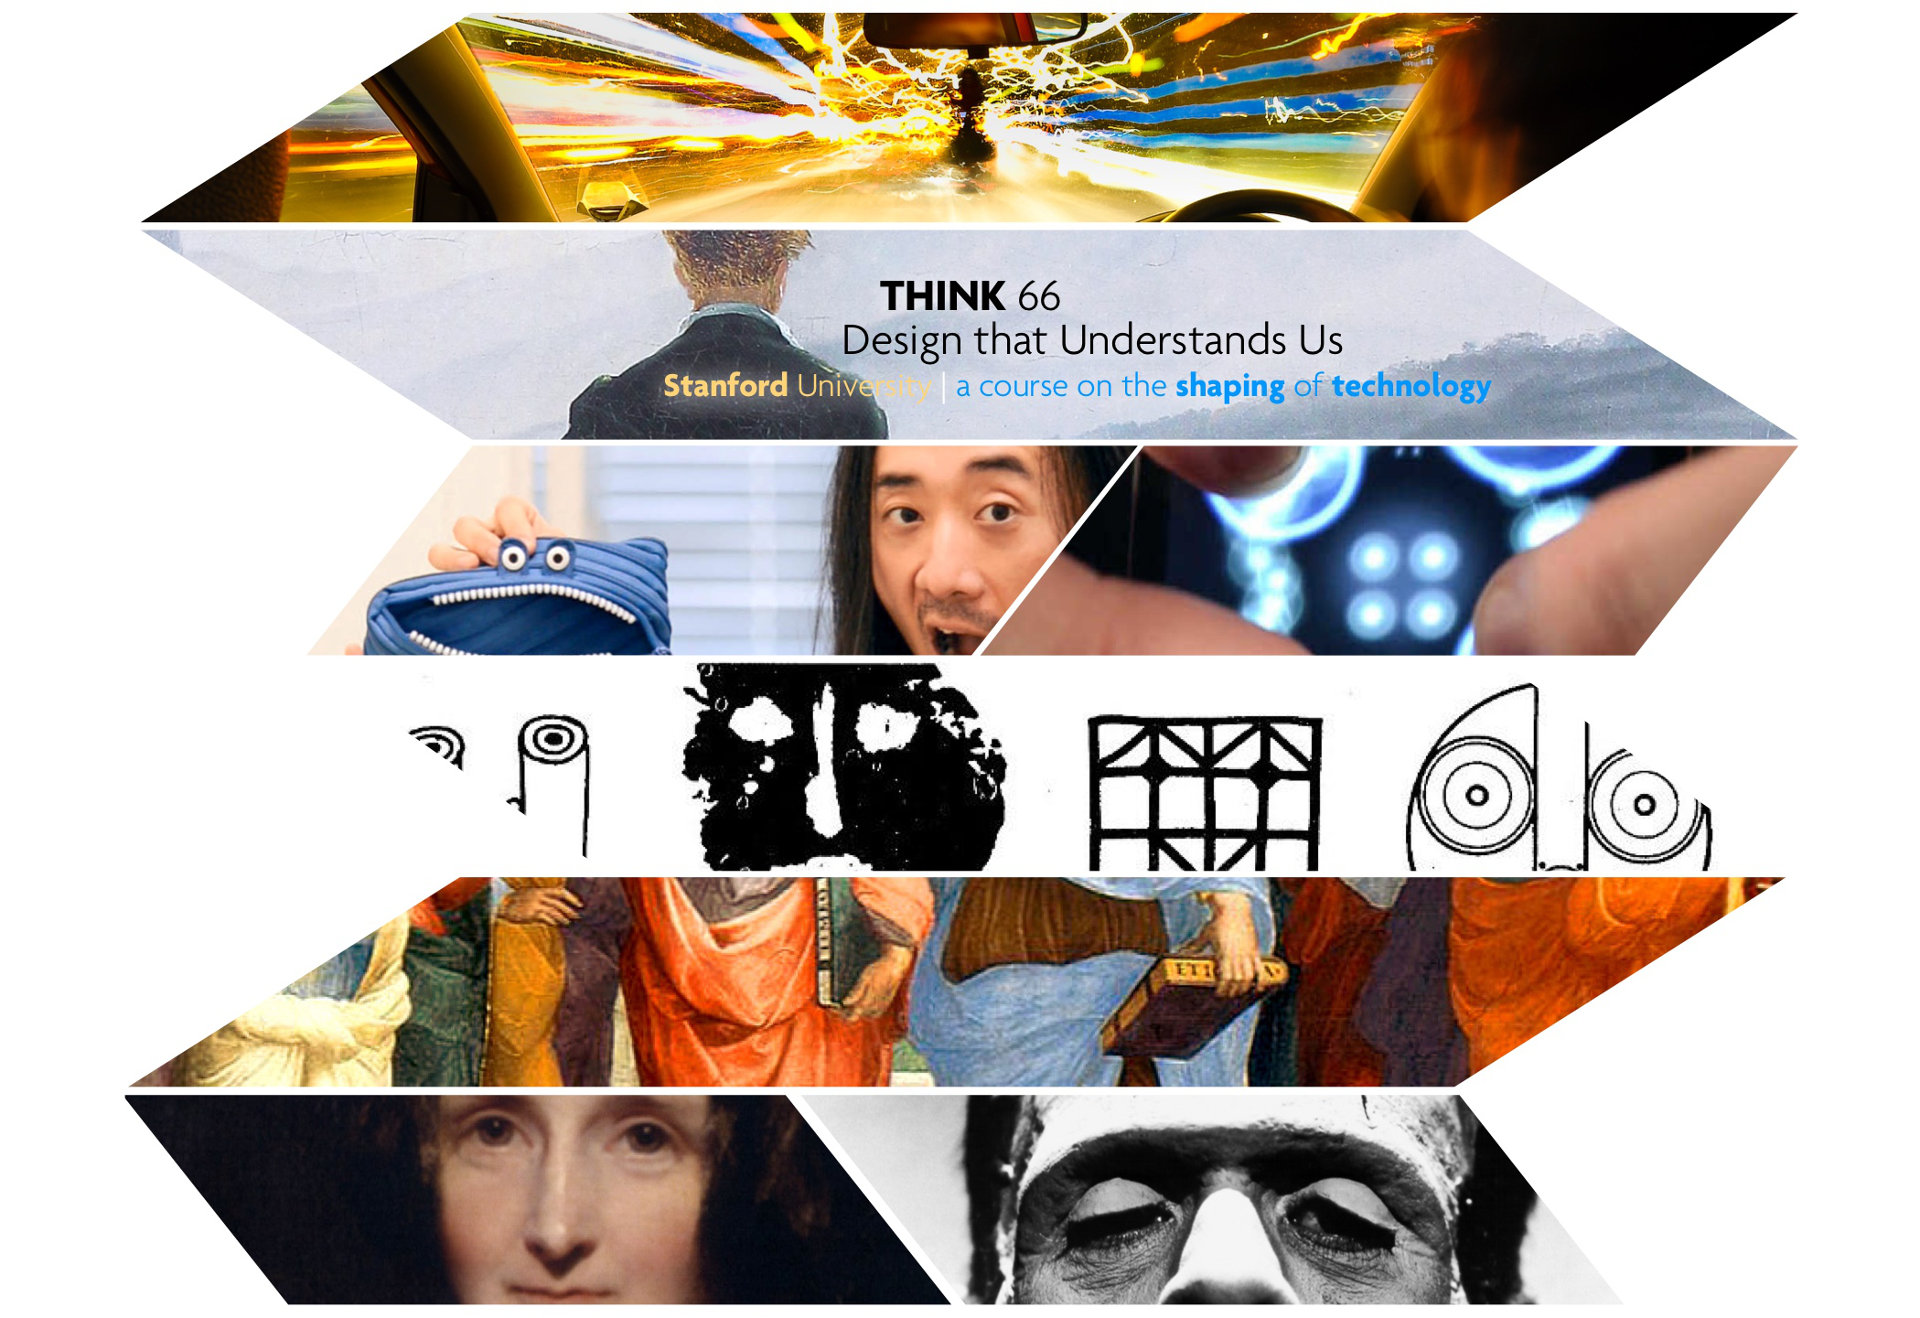 THINK 66 | Design that Understands Us